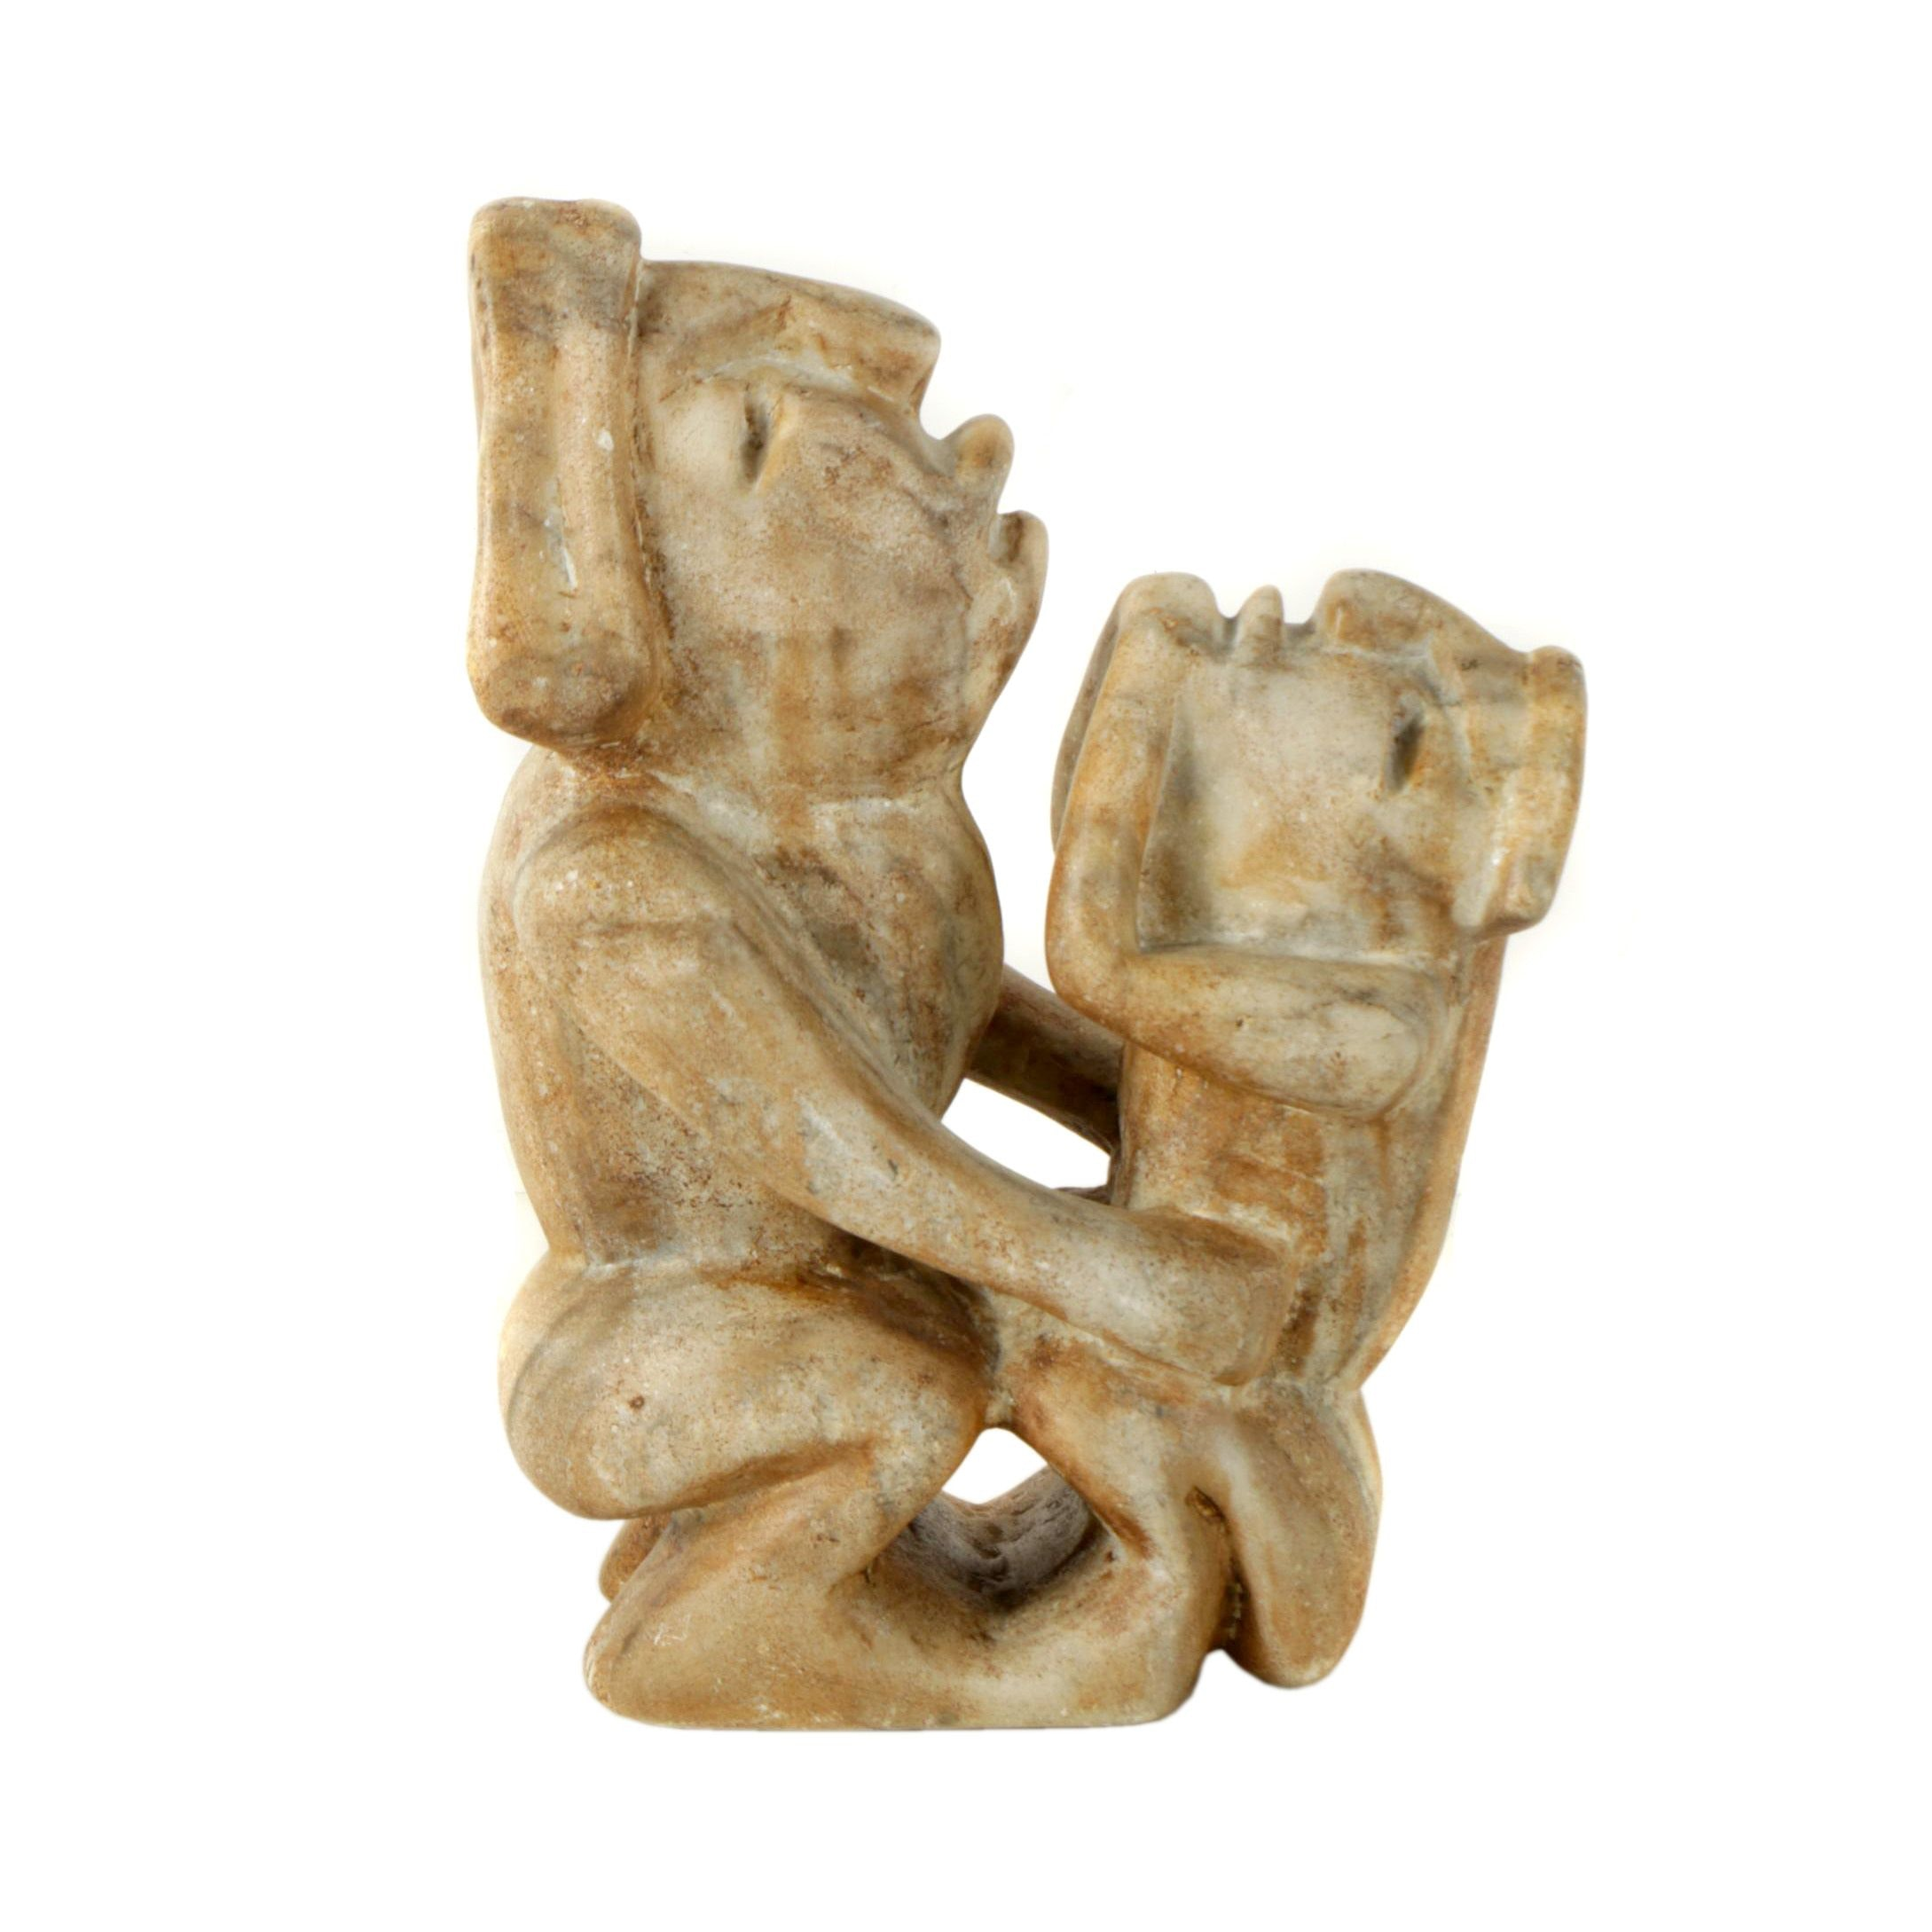 Mesoamerican Style Marble Sculpture of Two Figures